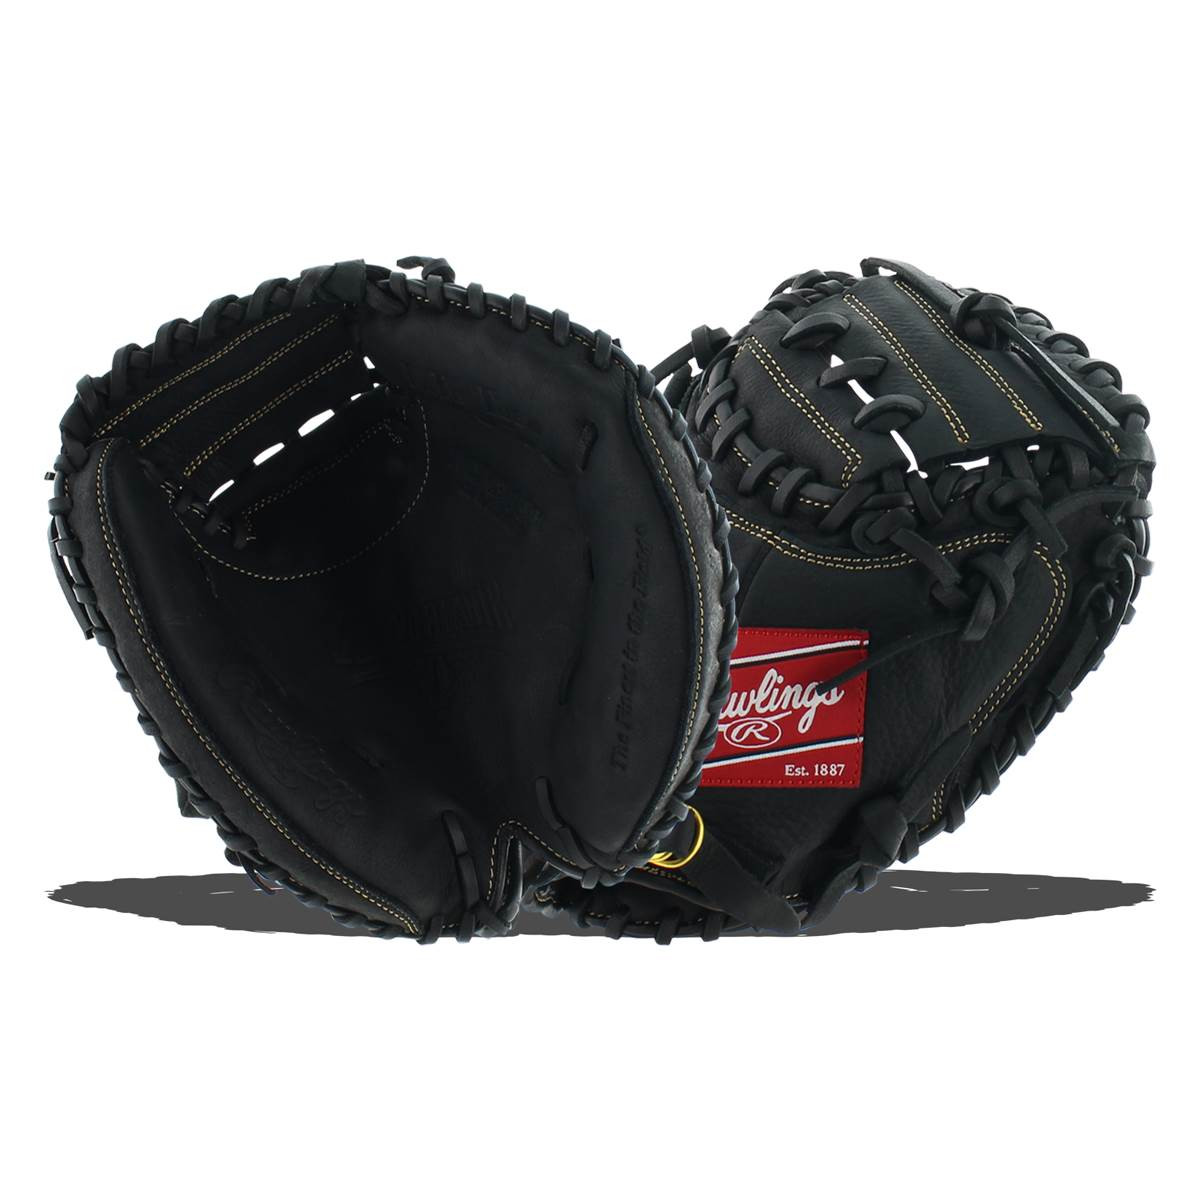 "RCM315B Rawlings Renegade 31.5"" Catcher's Mitt - Youth Regular THUMBNAIL"